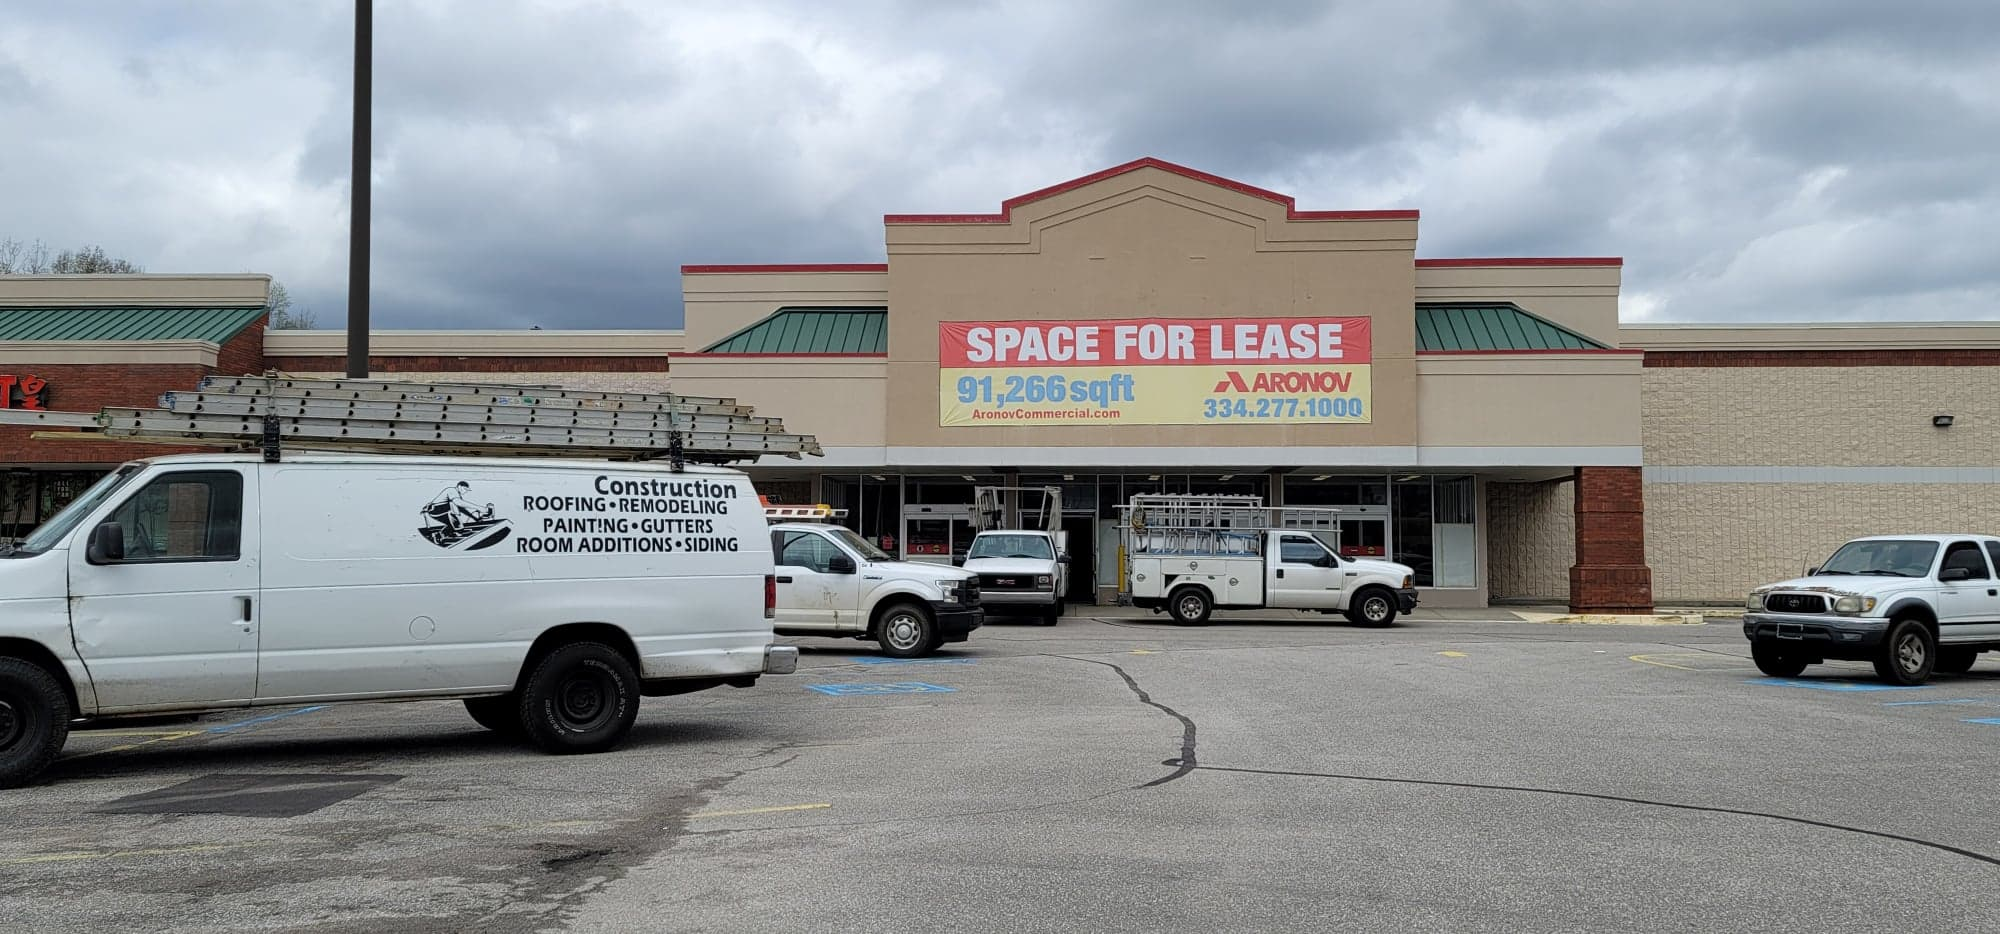 Tractor Supply Company opening in location of former Kmart in Trussville